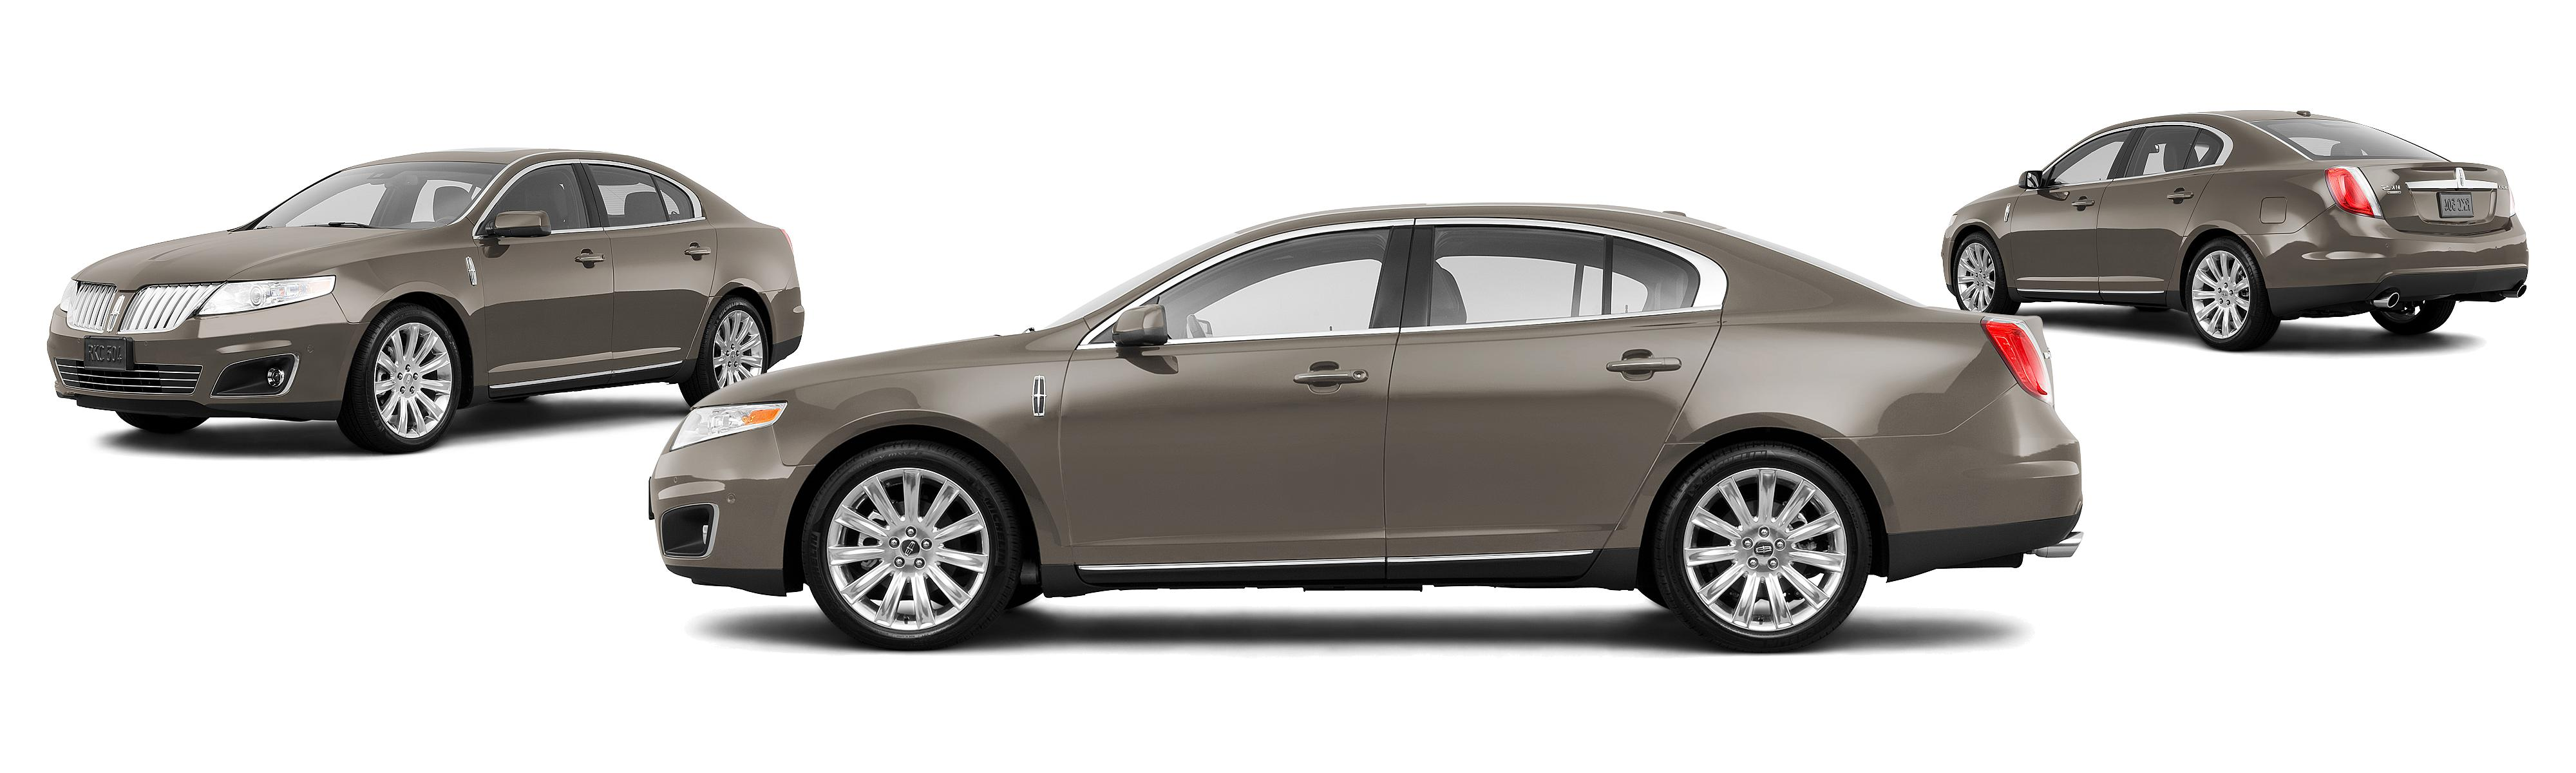 lincoin mks hybrid pinterest silver mkz lincoln wallpapers pin